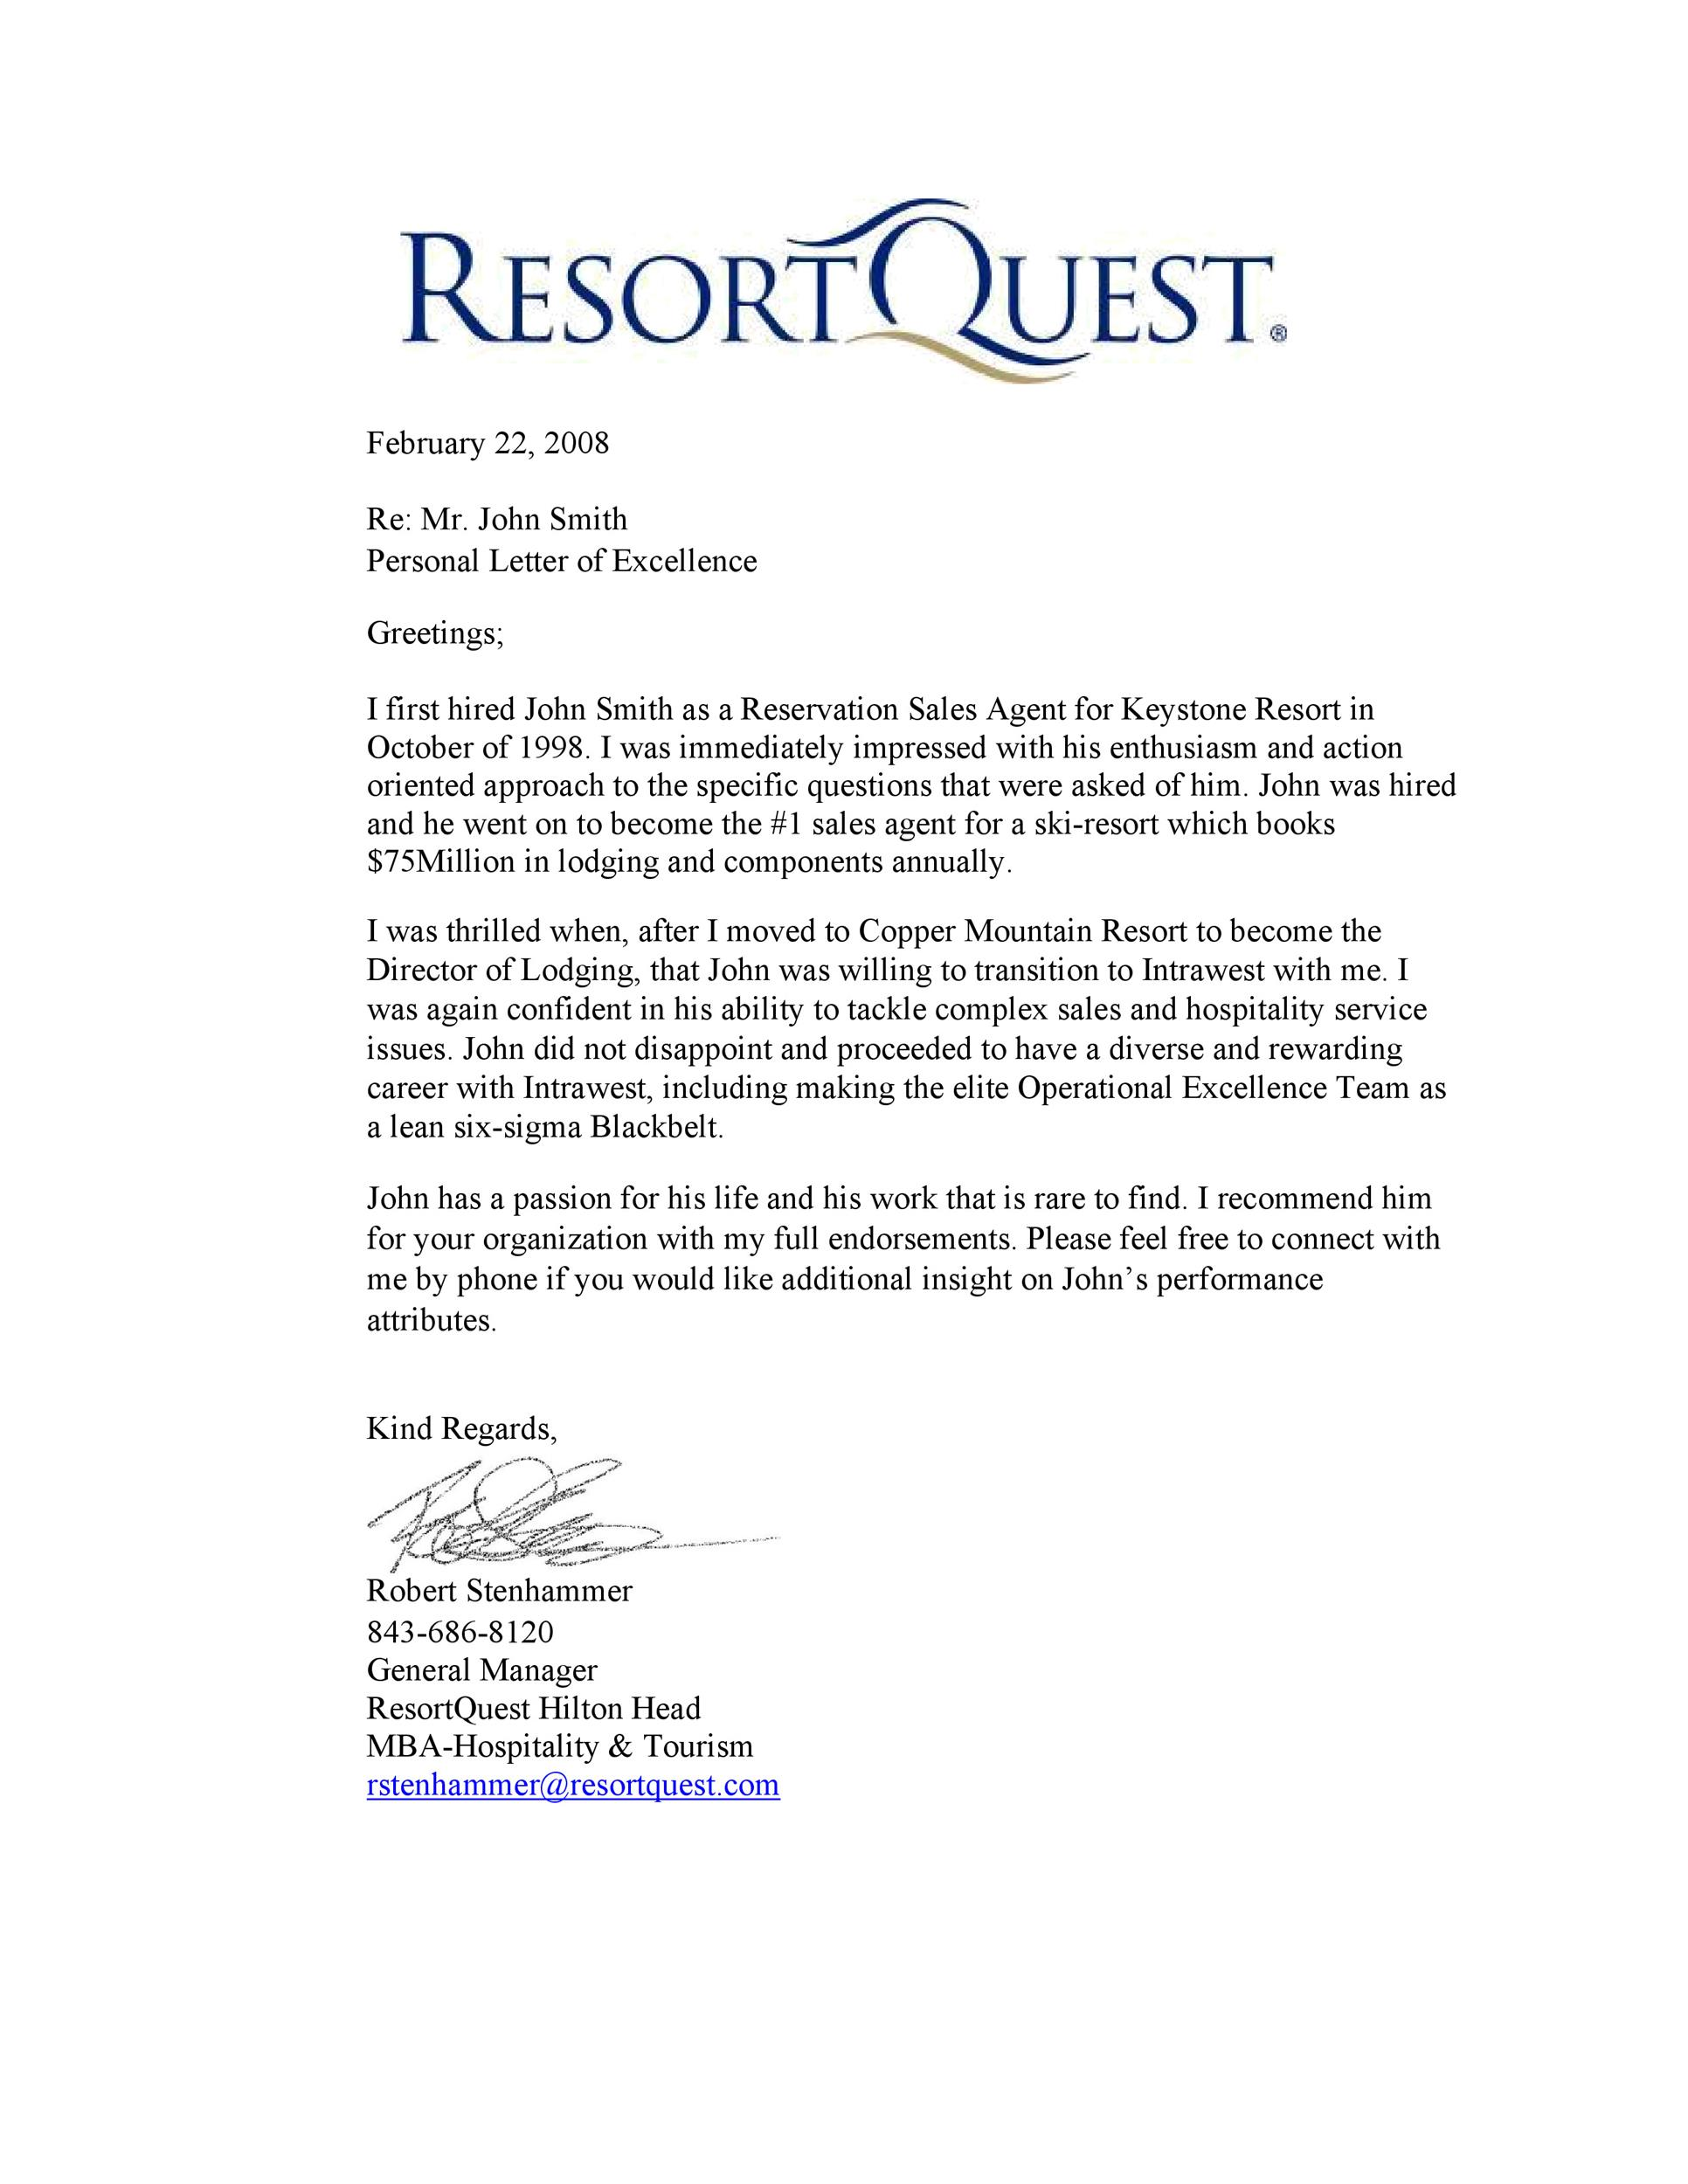 Mba Recommendation Letter Examples from templatelab.com